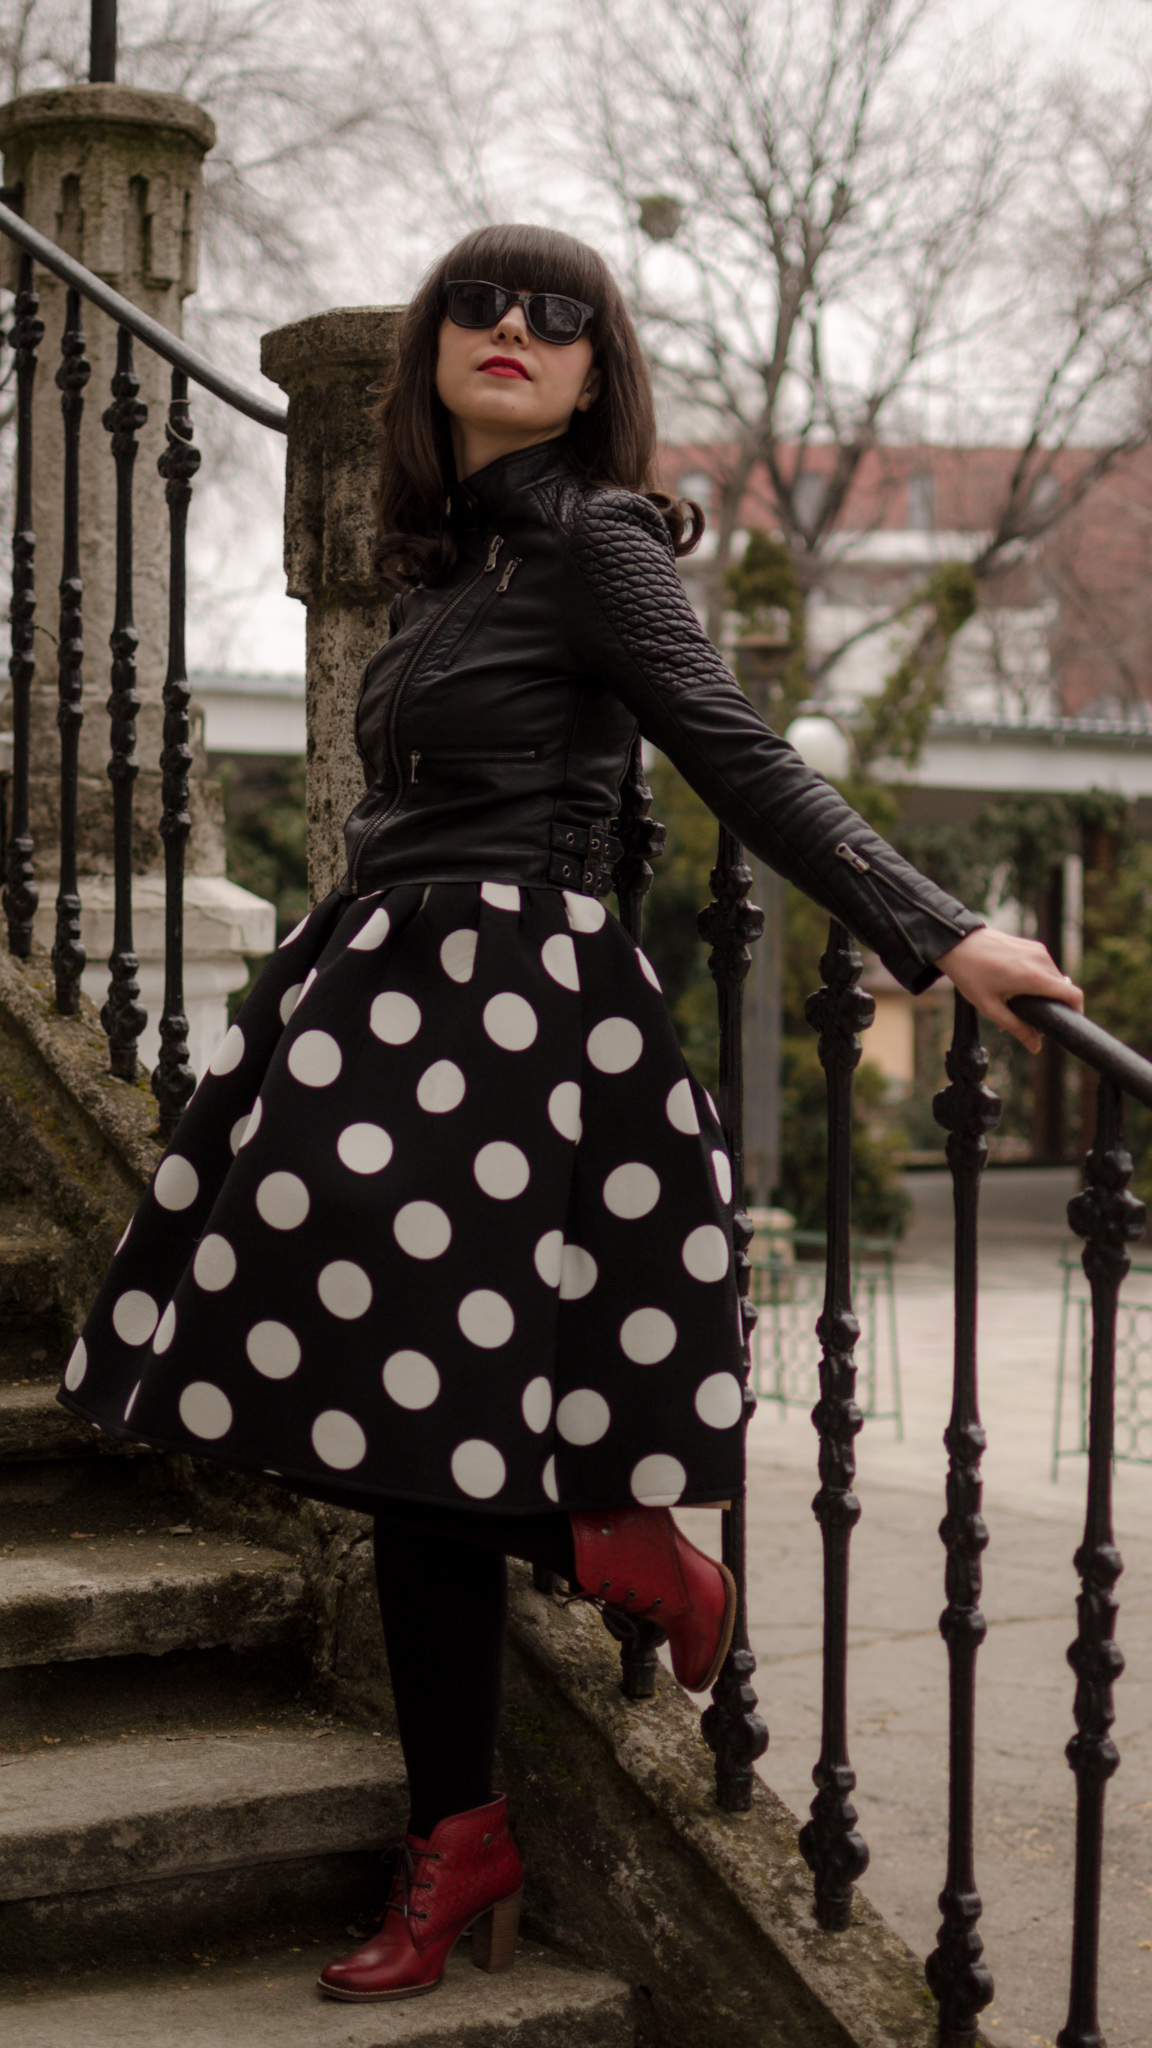 big polka dots puffed up skirt sheinside rock leather jacket burgundy boots black & white cats t-shirt spring new yorker